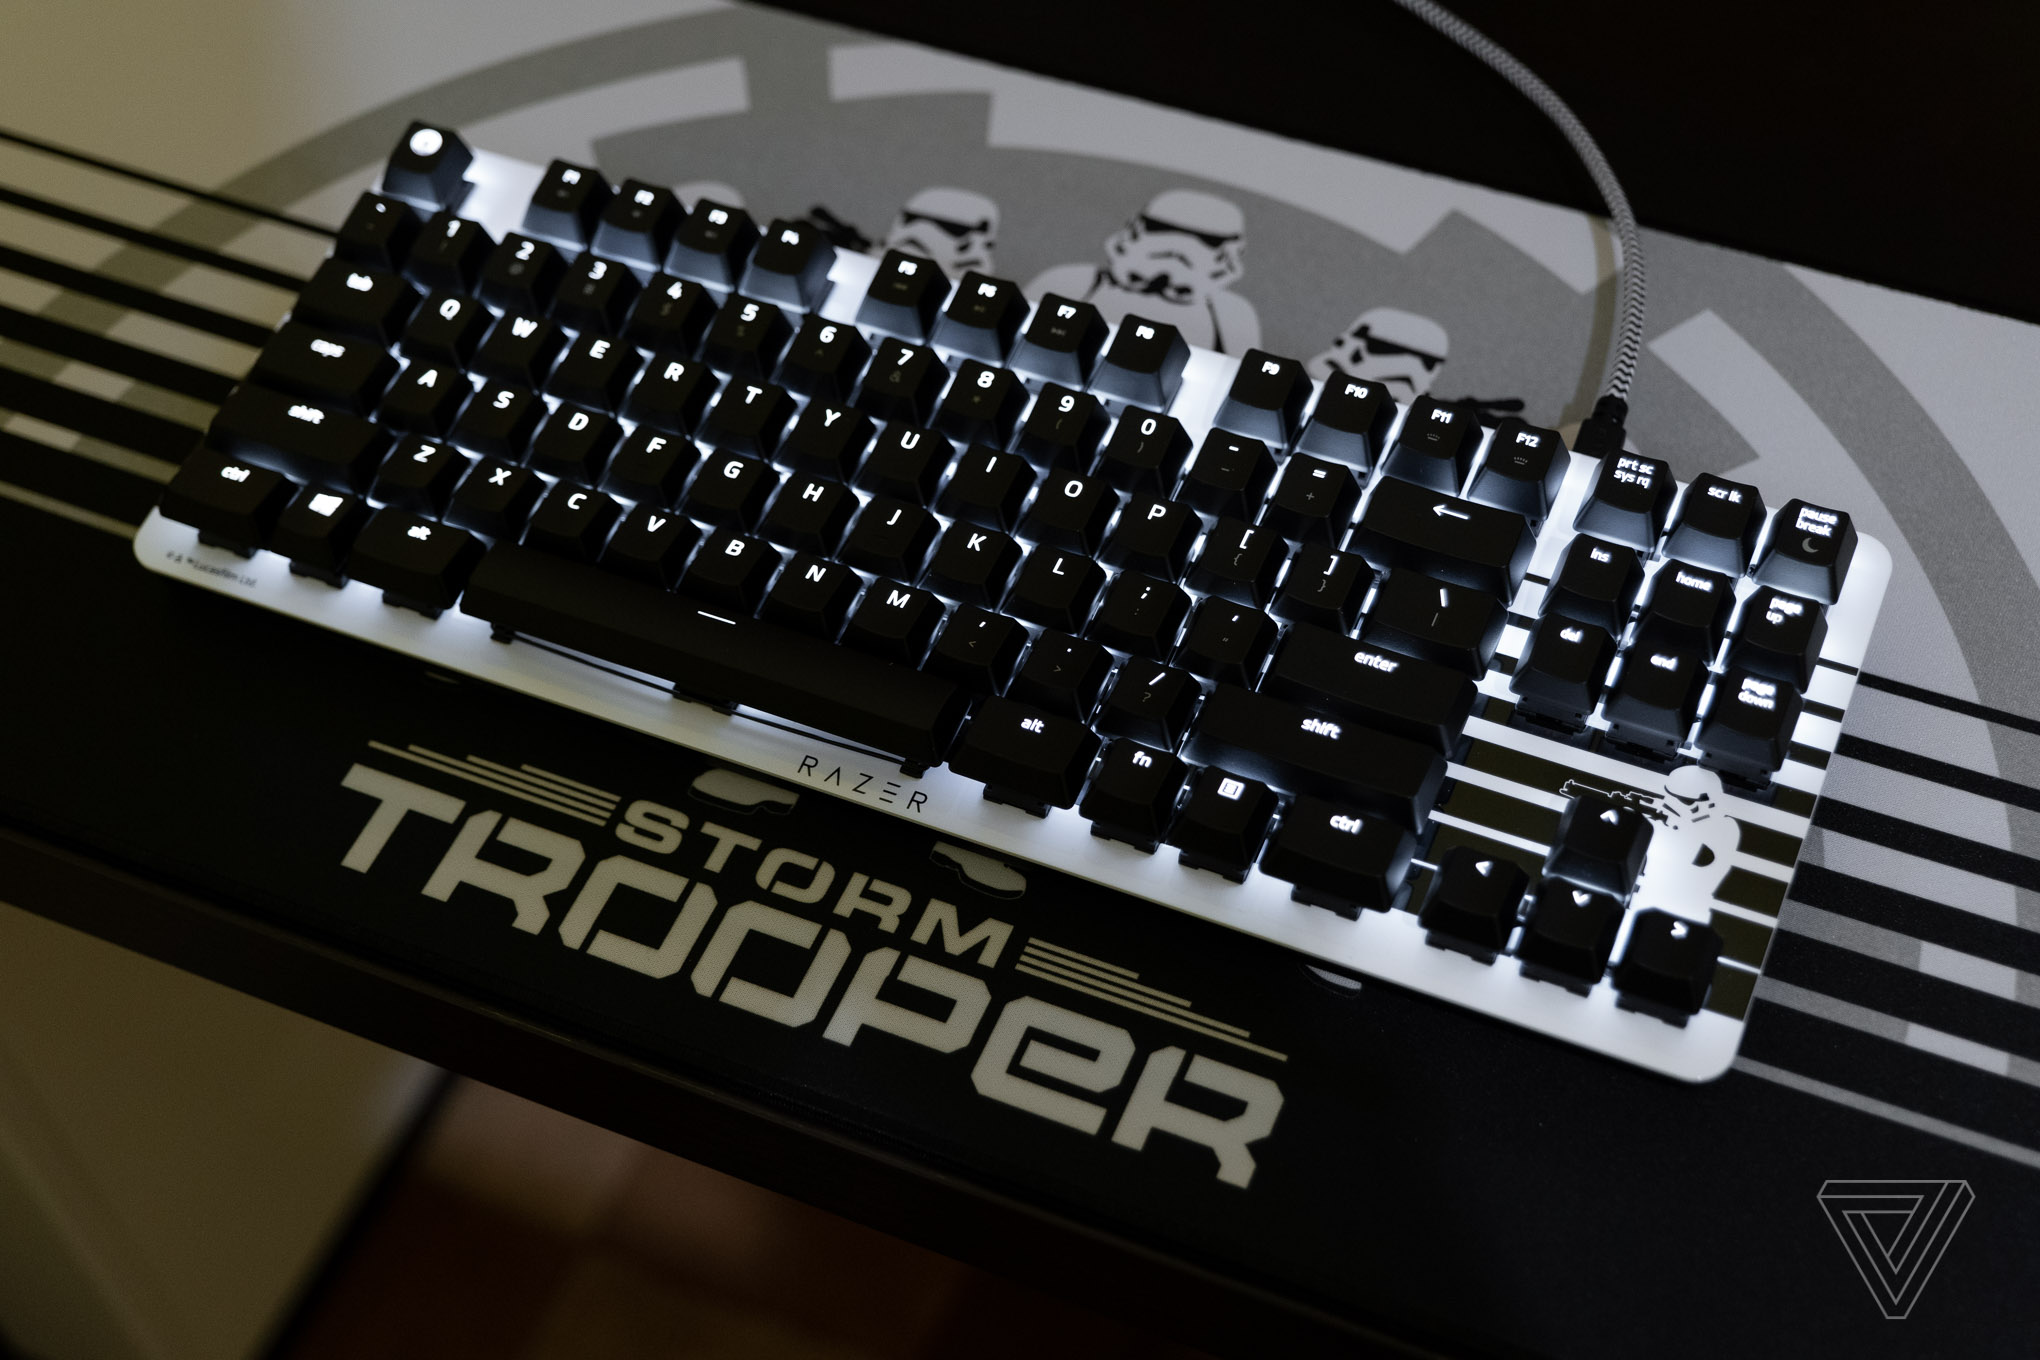 Razer's Stormtrooper gaming gear is a mix of awesome and awful - The